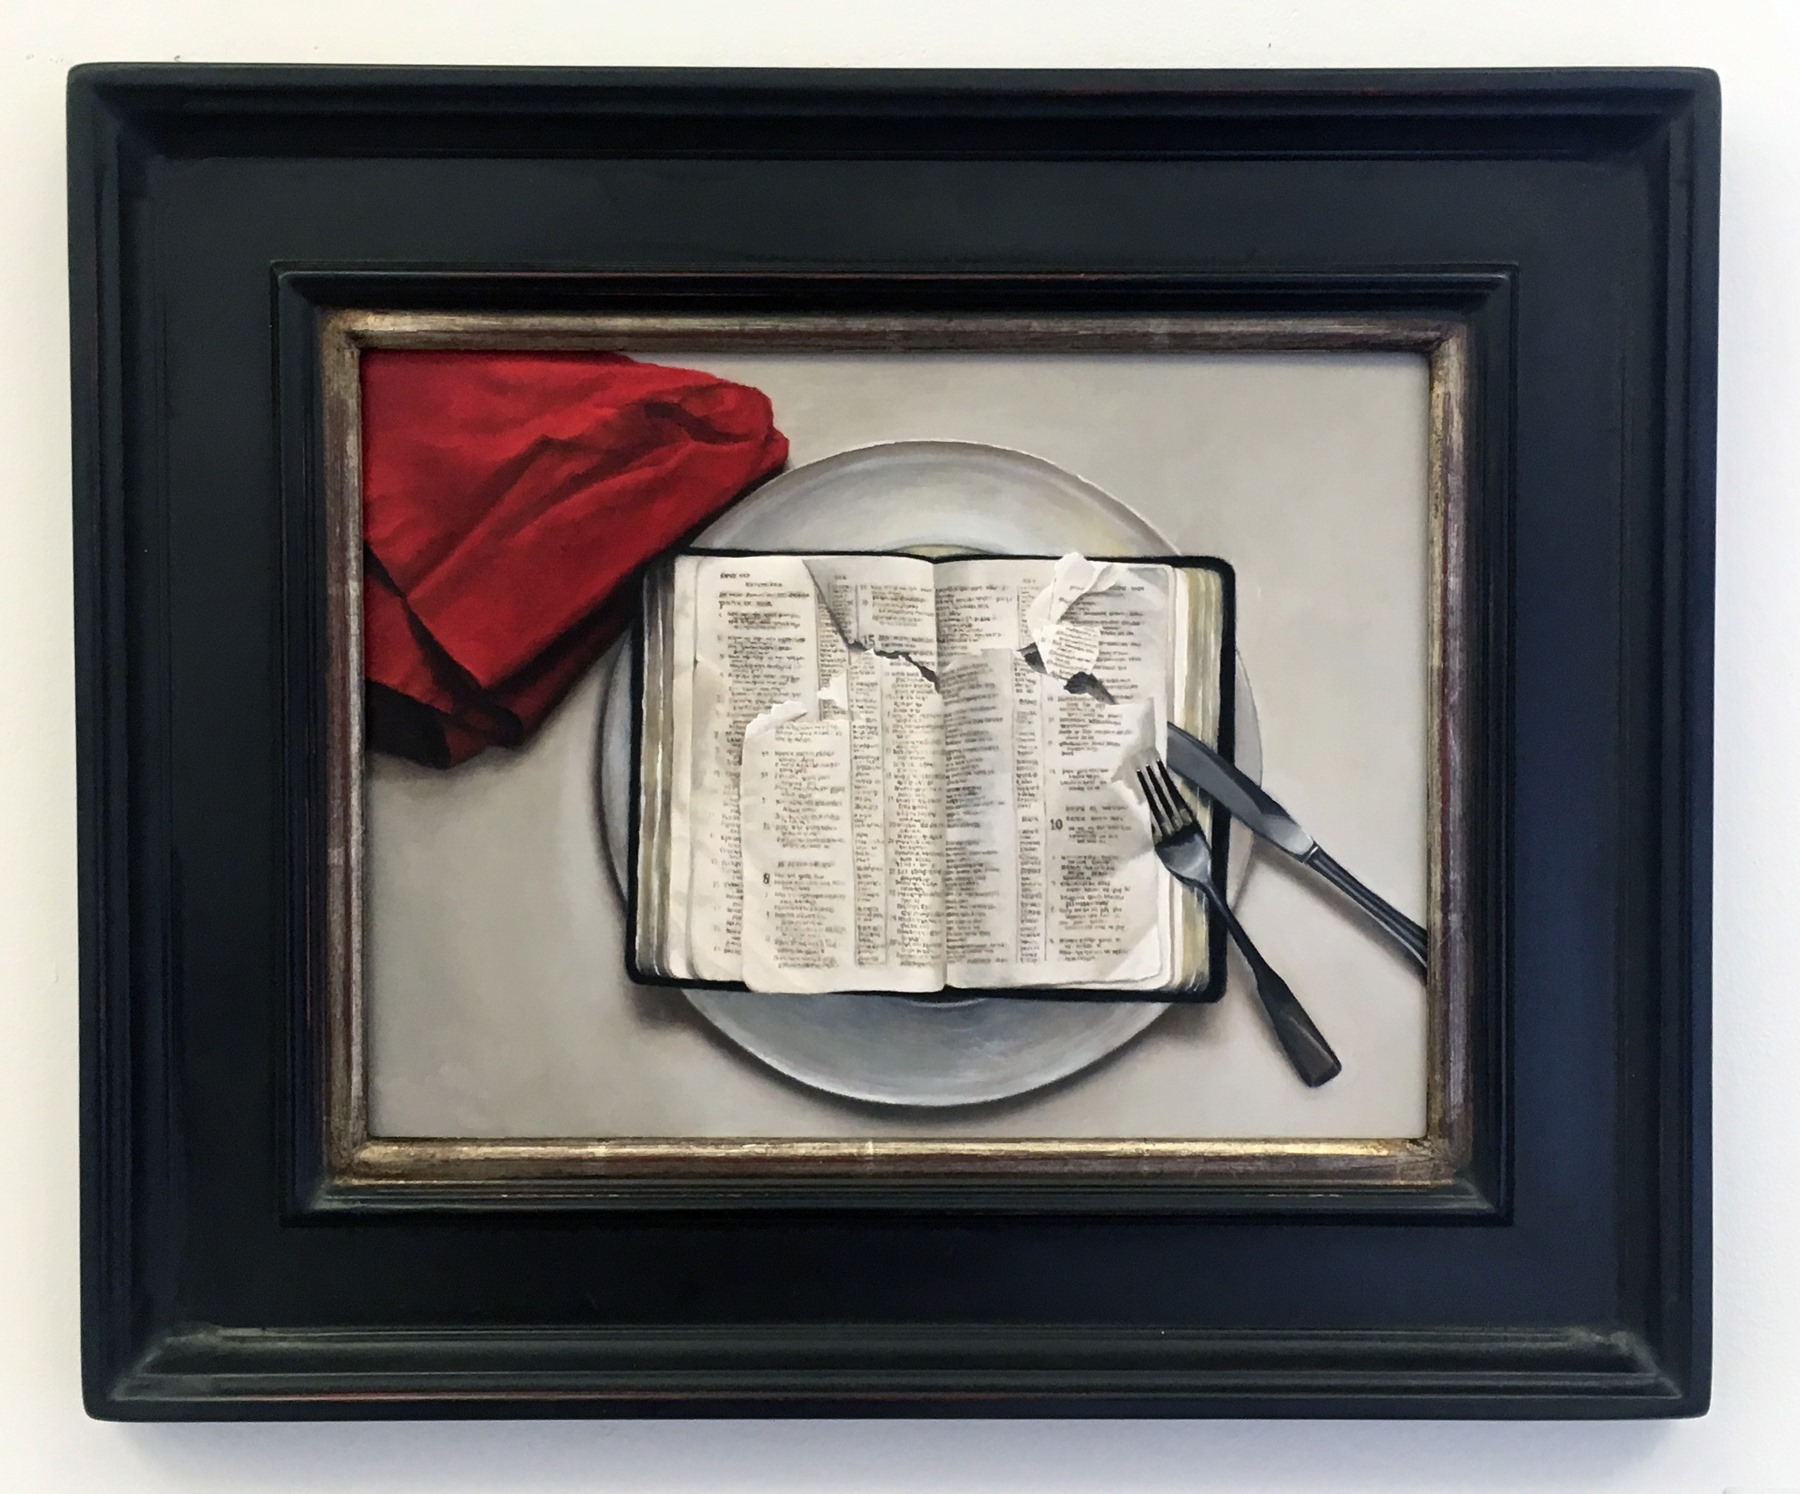 """A.S. McGuffin - """"I discovered your words, I devoured them"""" Insta: @mcguffinfineart  For Sale: $1,800"""